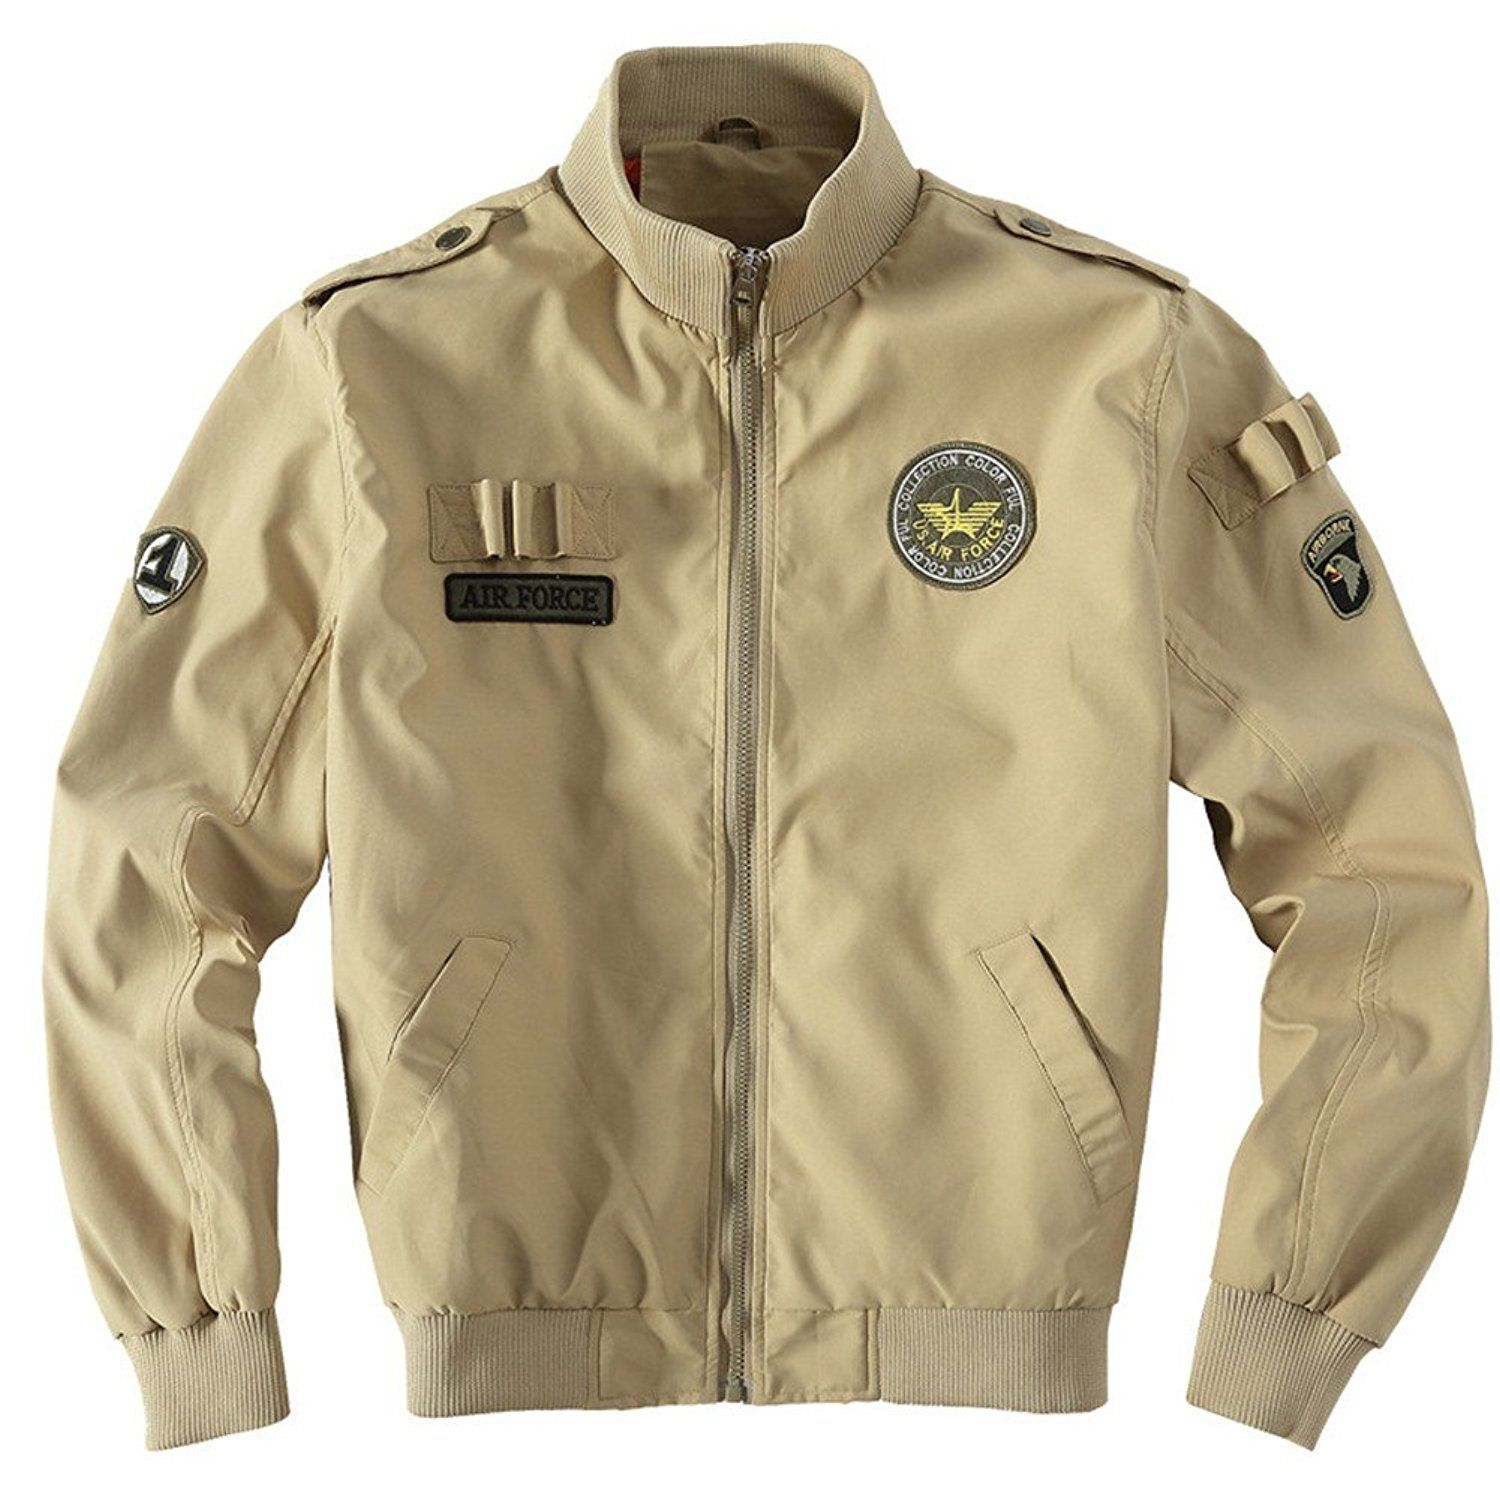 SZYYSD Men's Cotton Military Air Force Bomber Jackets USA